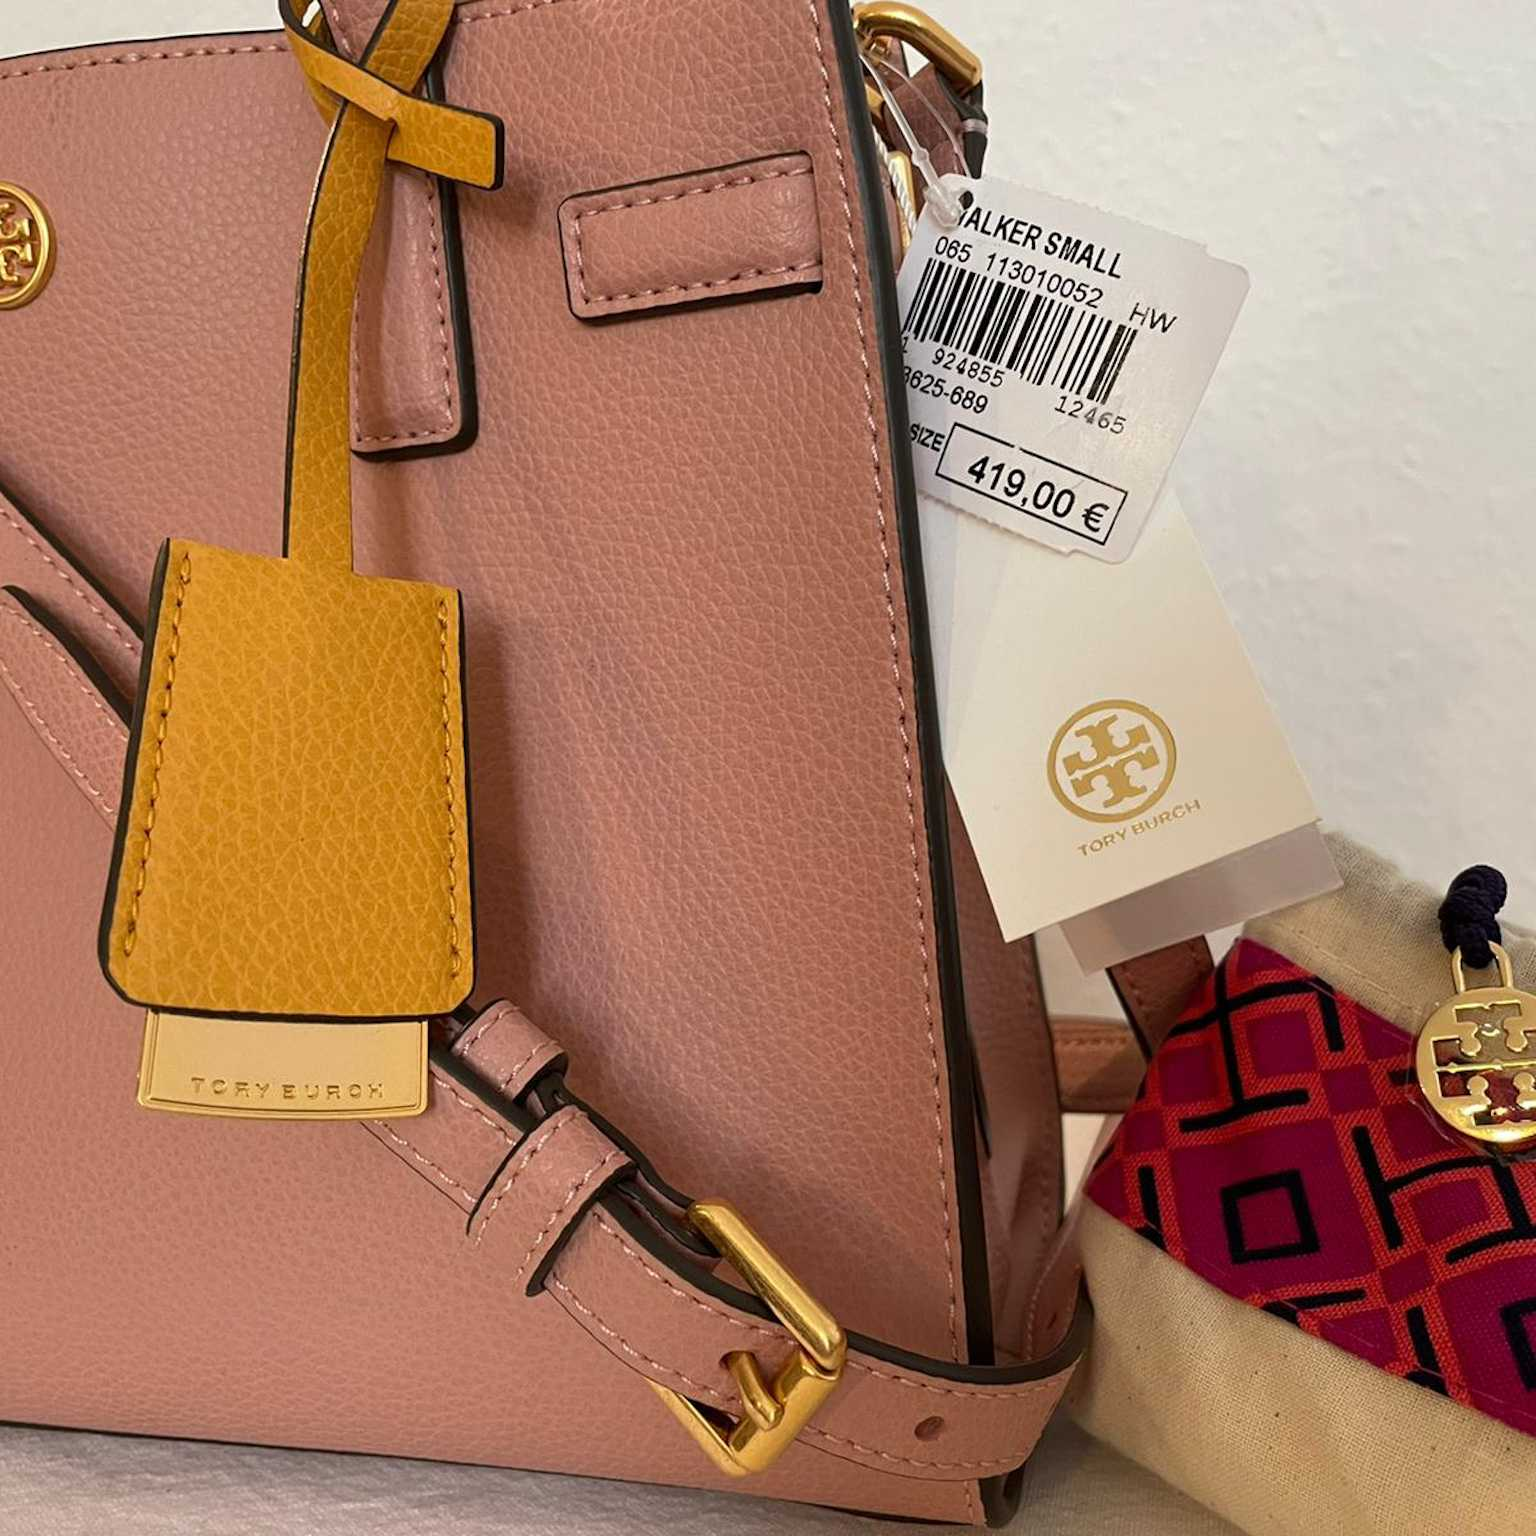 new Tory Burch Walker (small)Other0